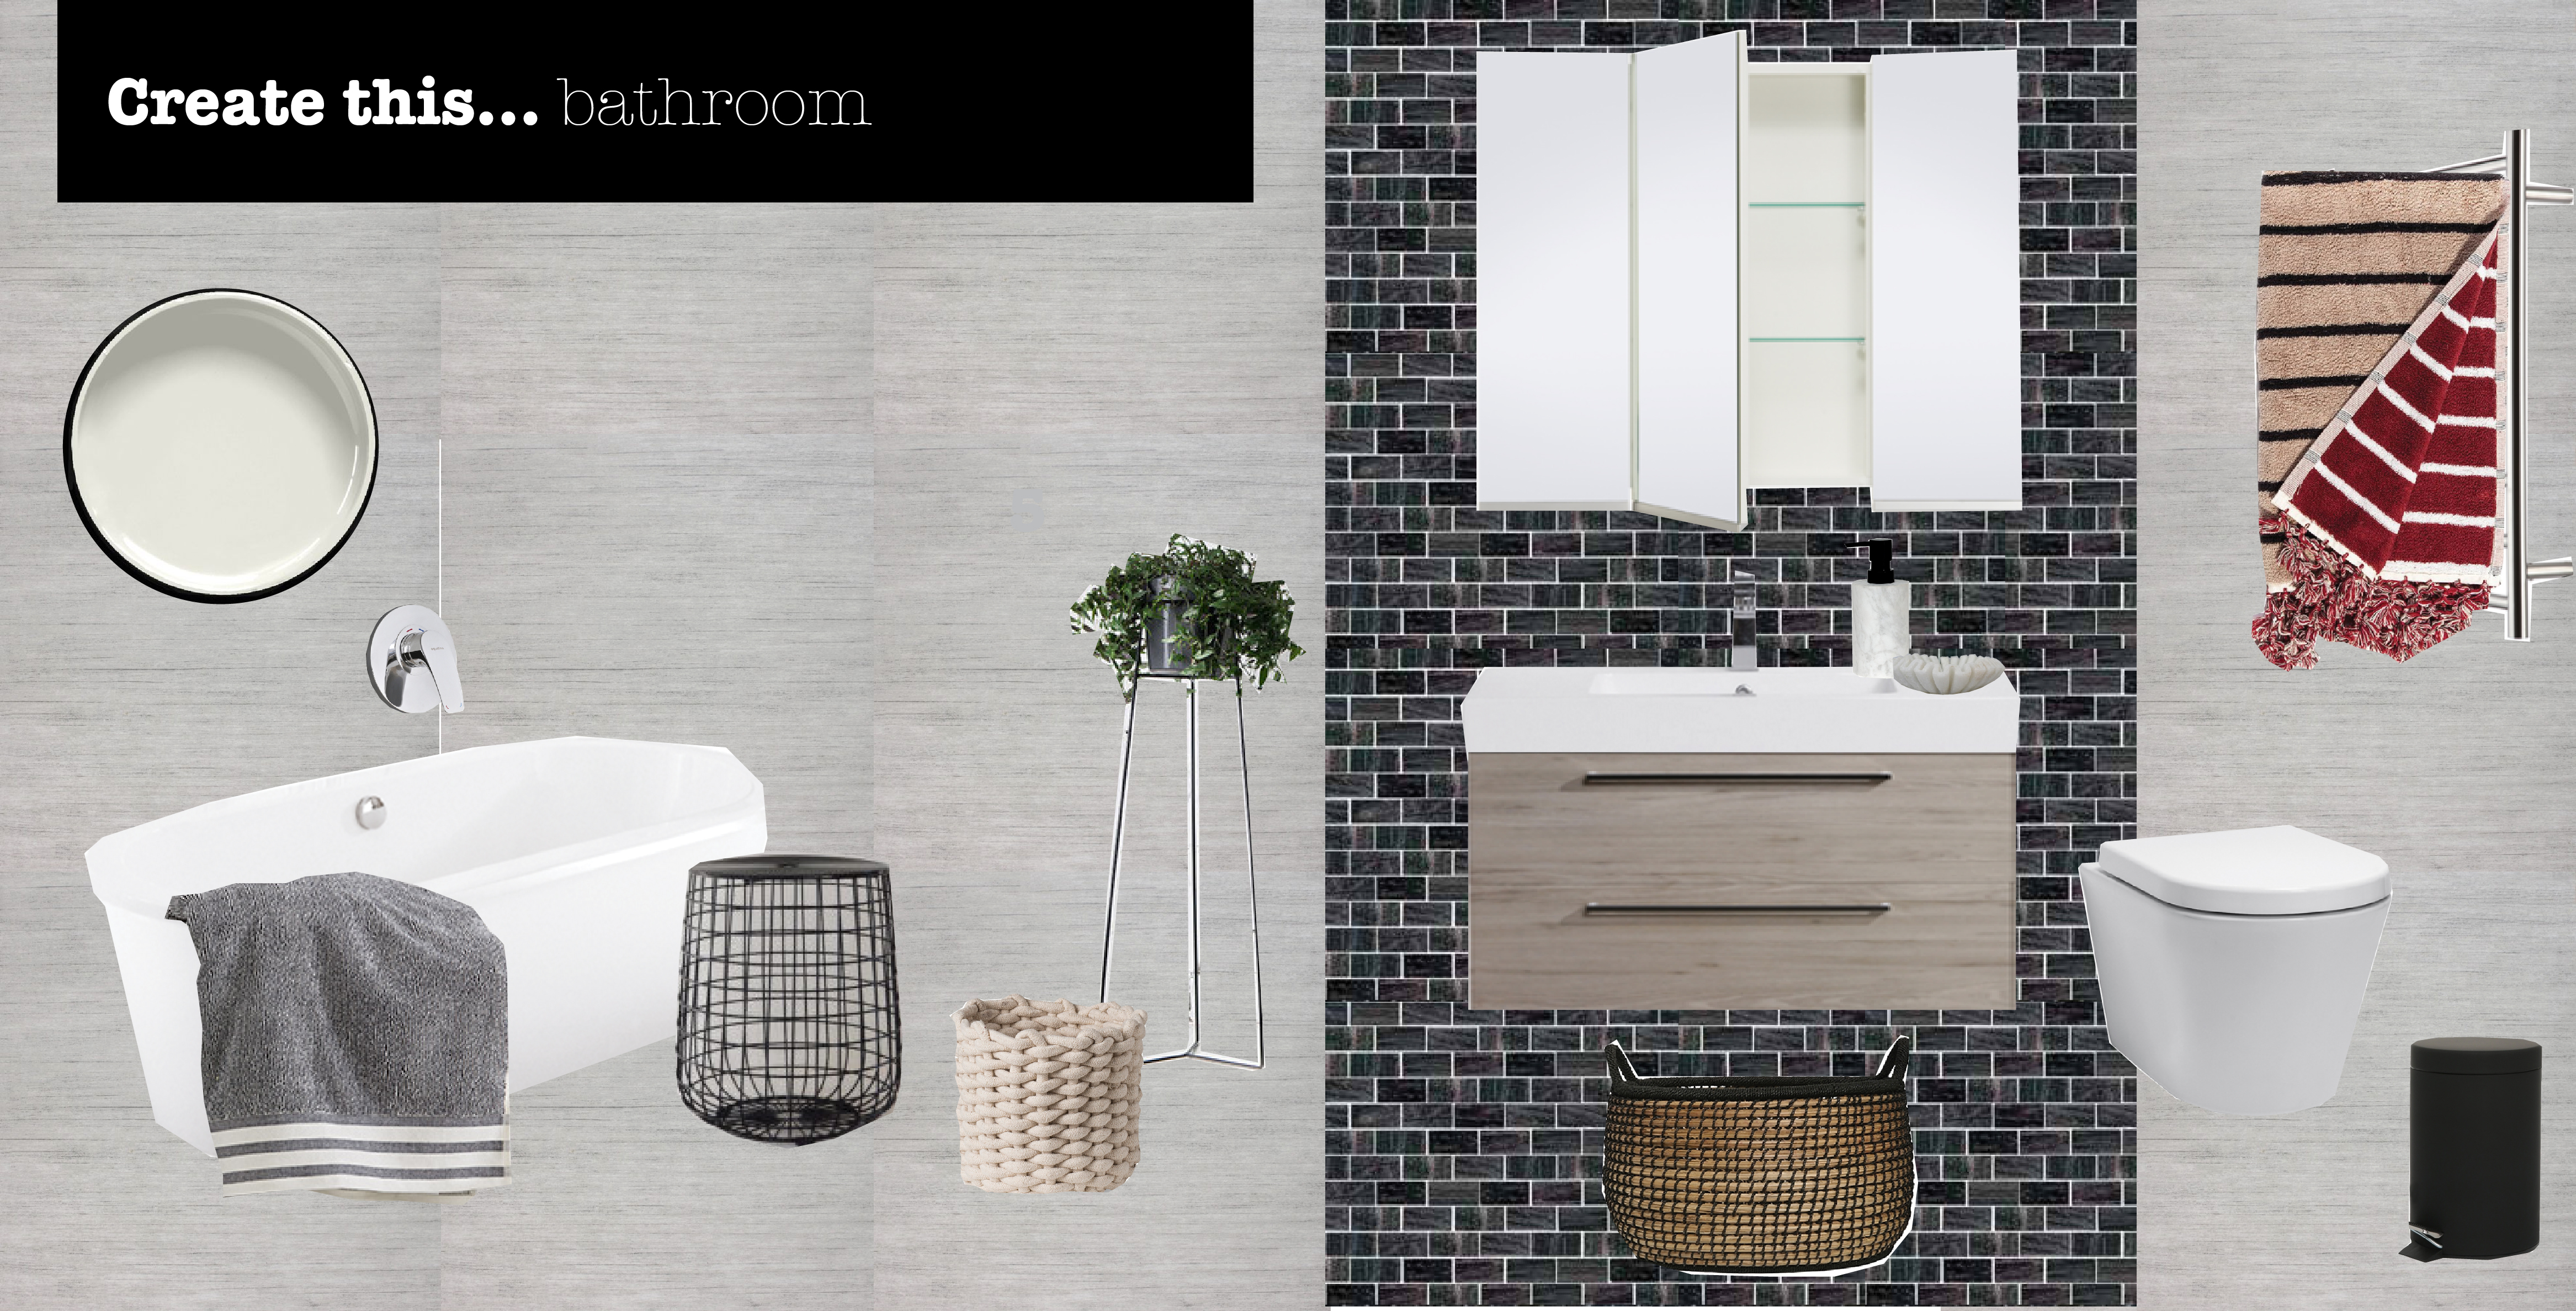 create this bathroom